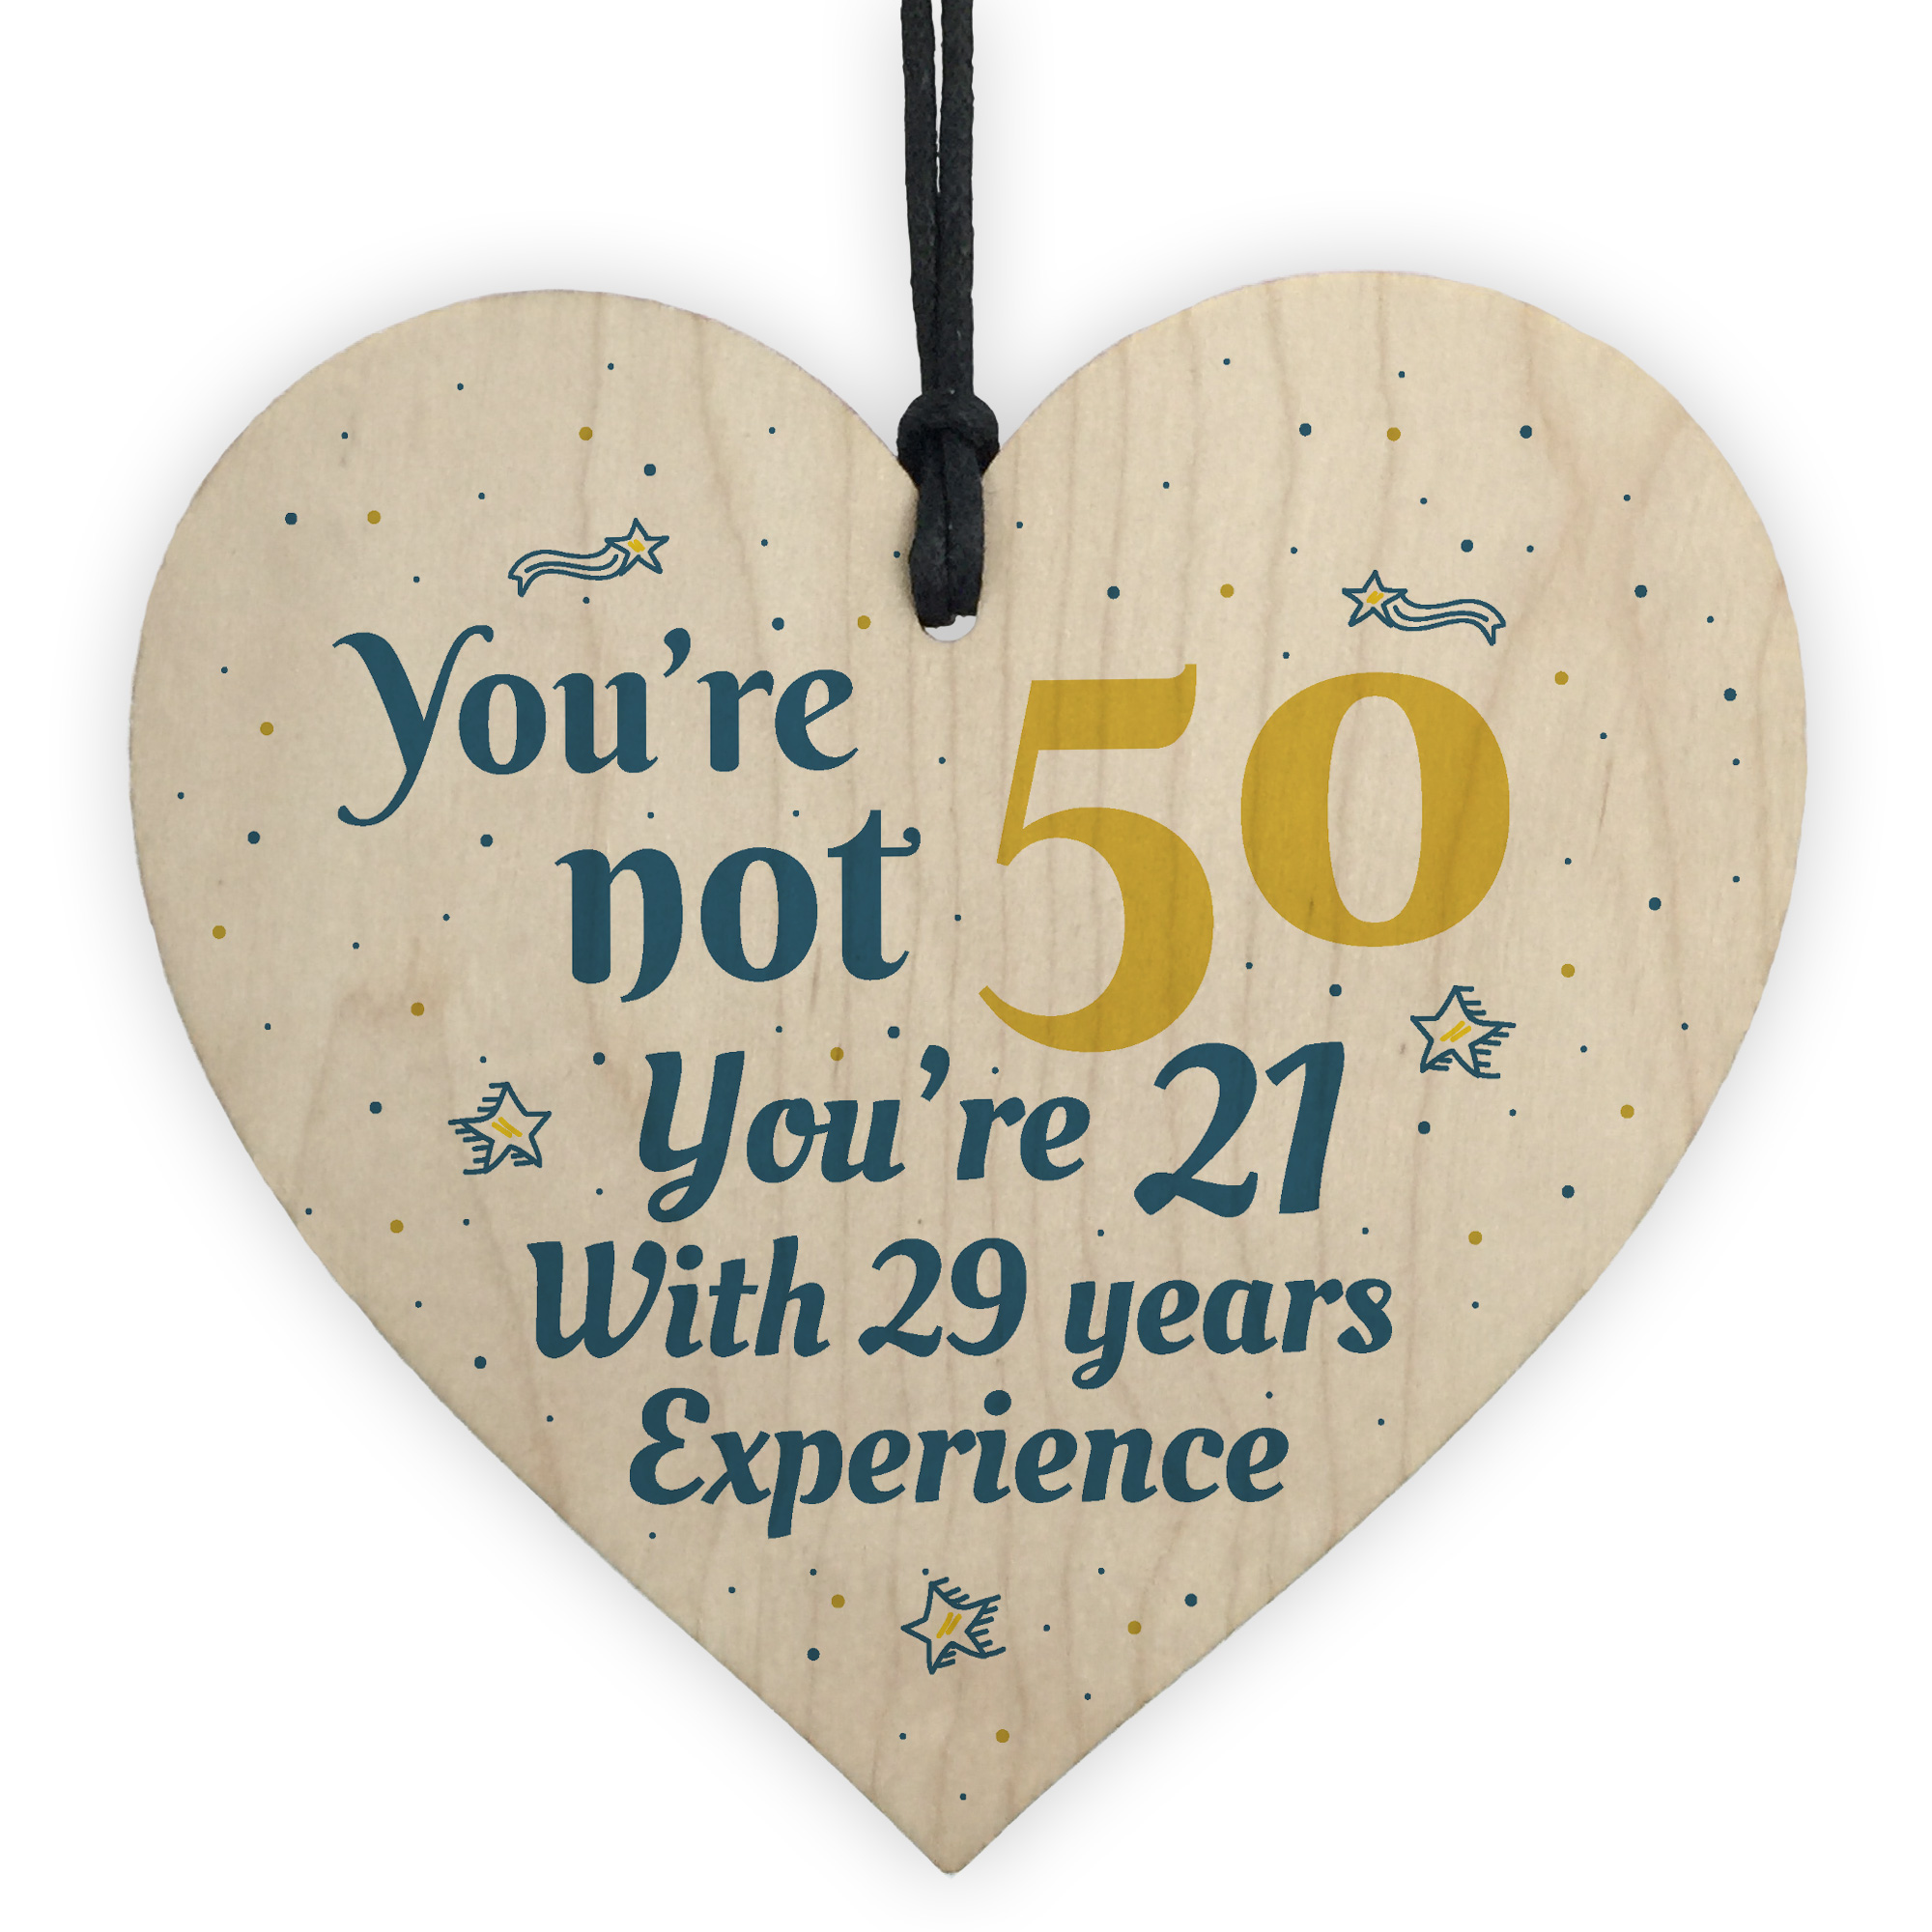 Details About 50th Birthday Gift Wooden Heart 50 For Dad Mum Sister Friend Funny Sign Keepsake